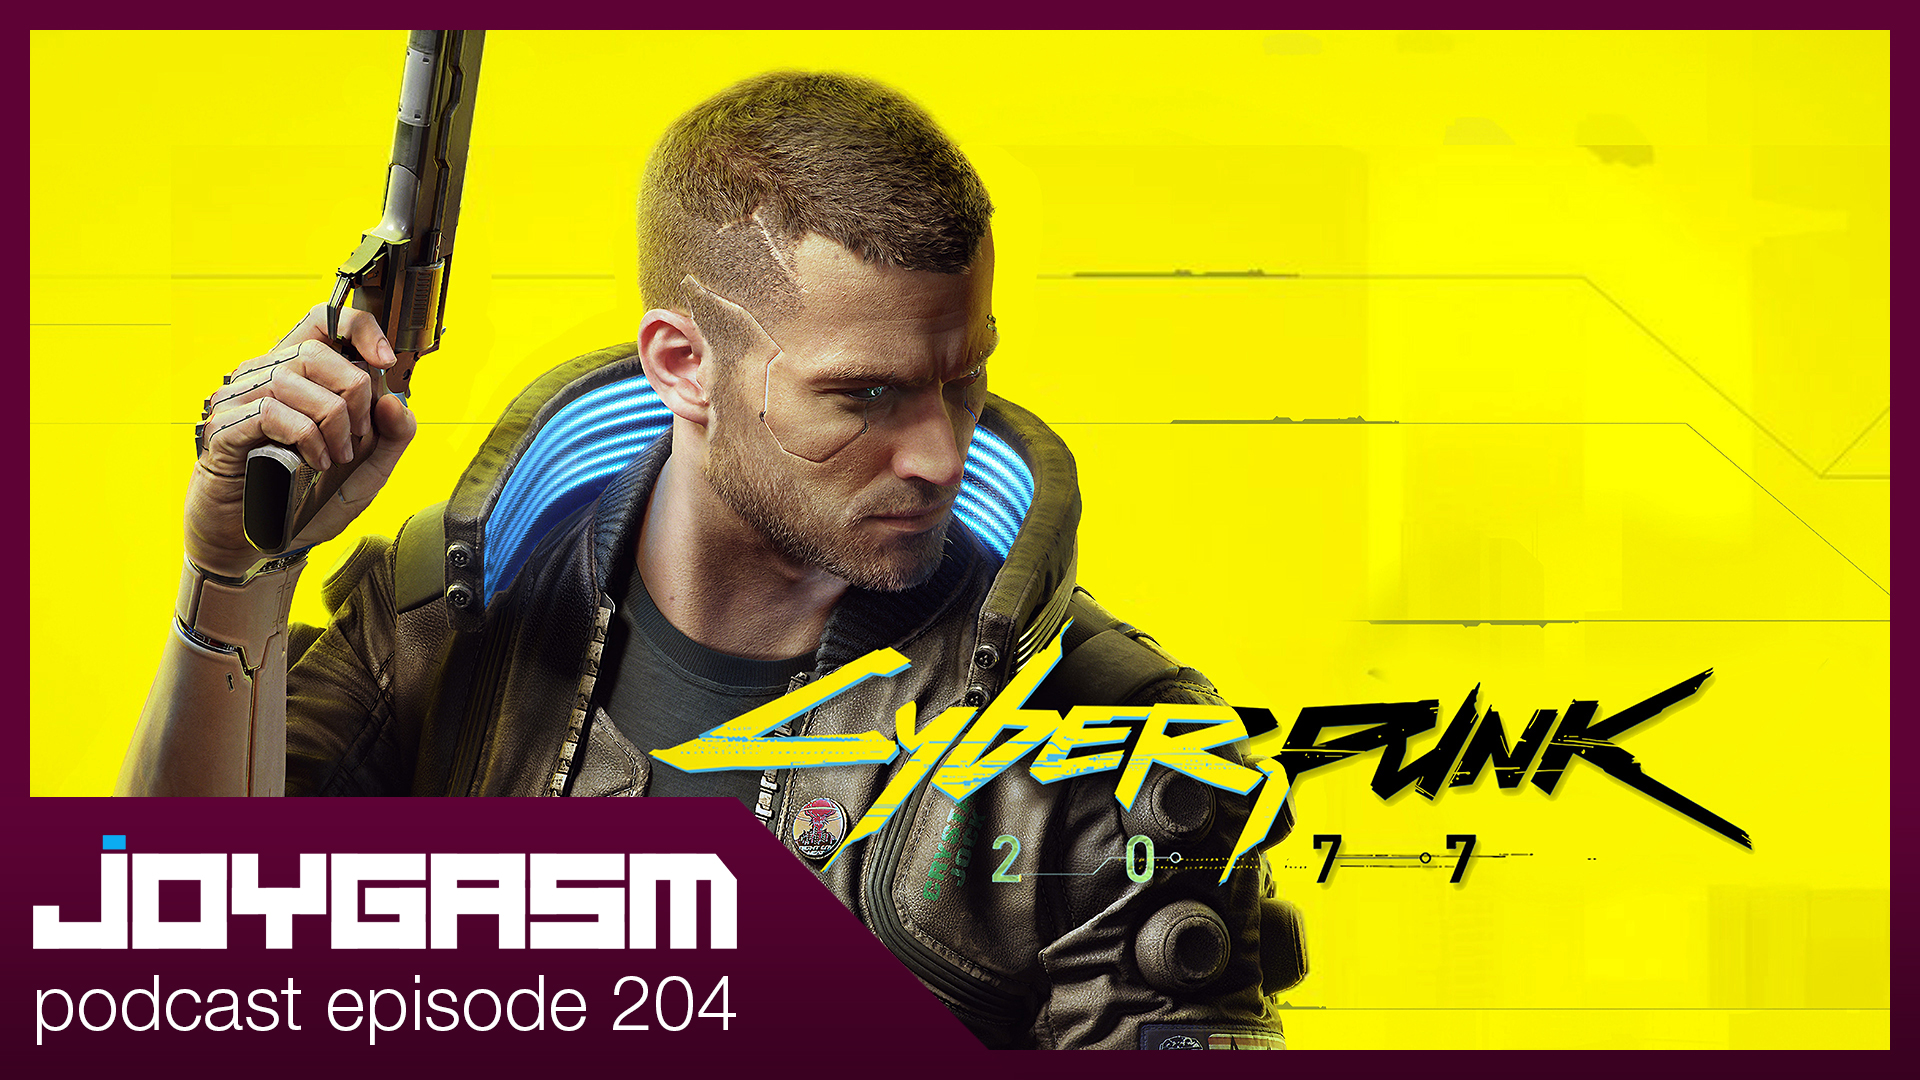 Ep. 204: Cyberpunk 2077 Hands On Impressions for PC, Xbox Series X, and Xbox One